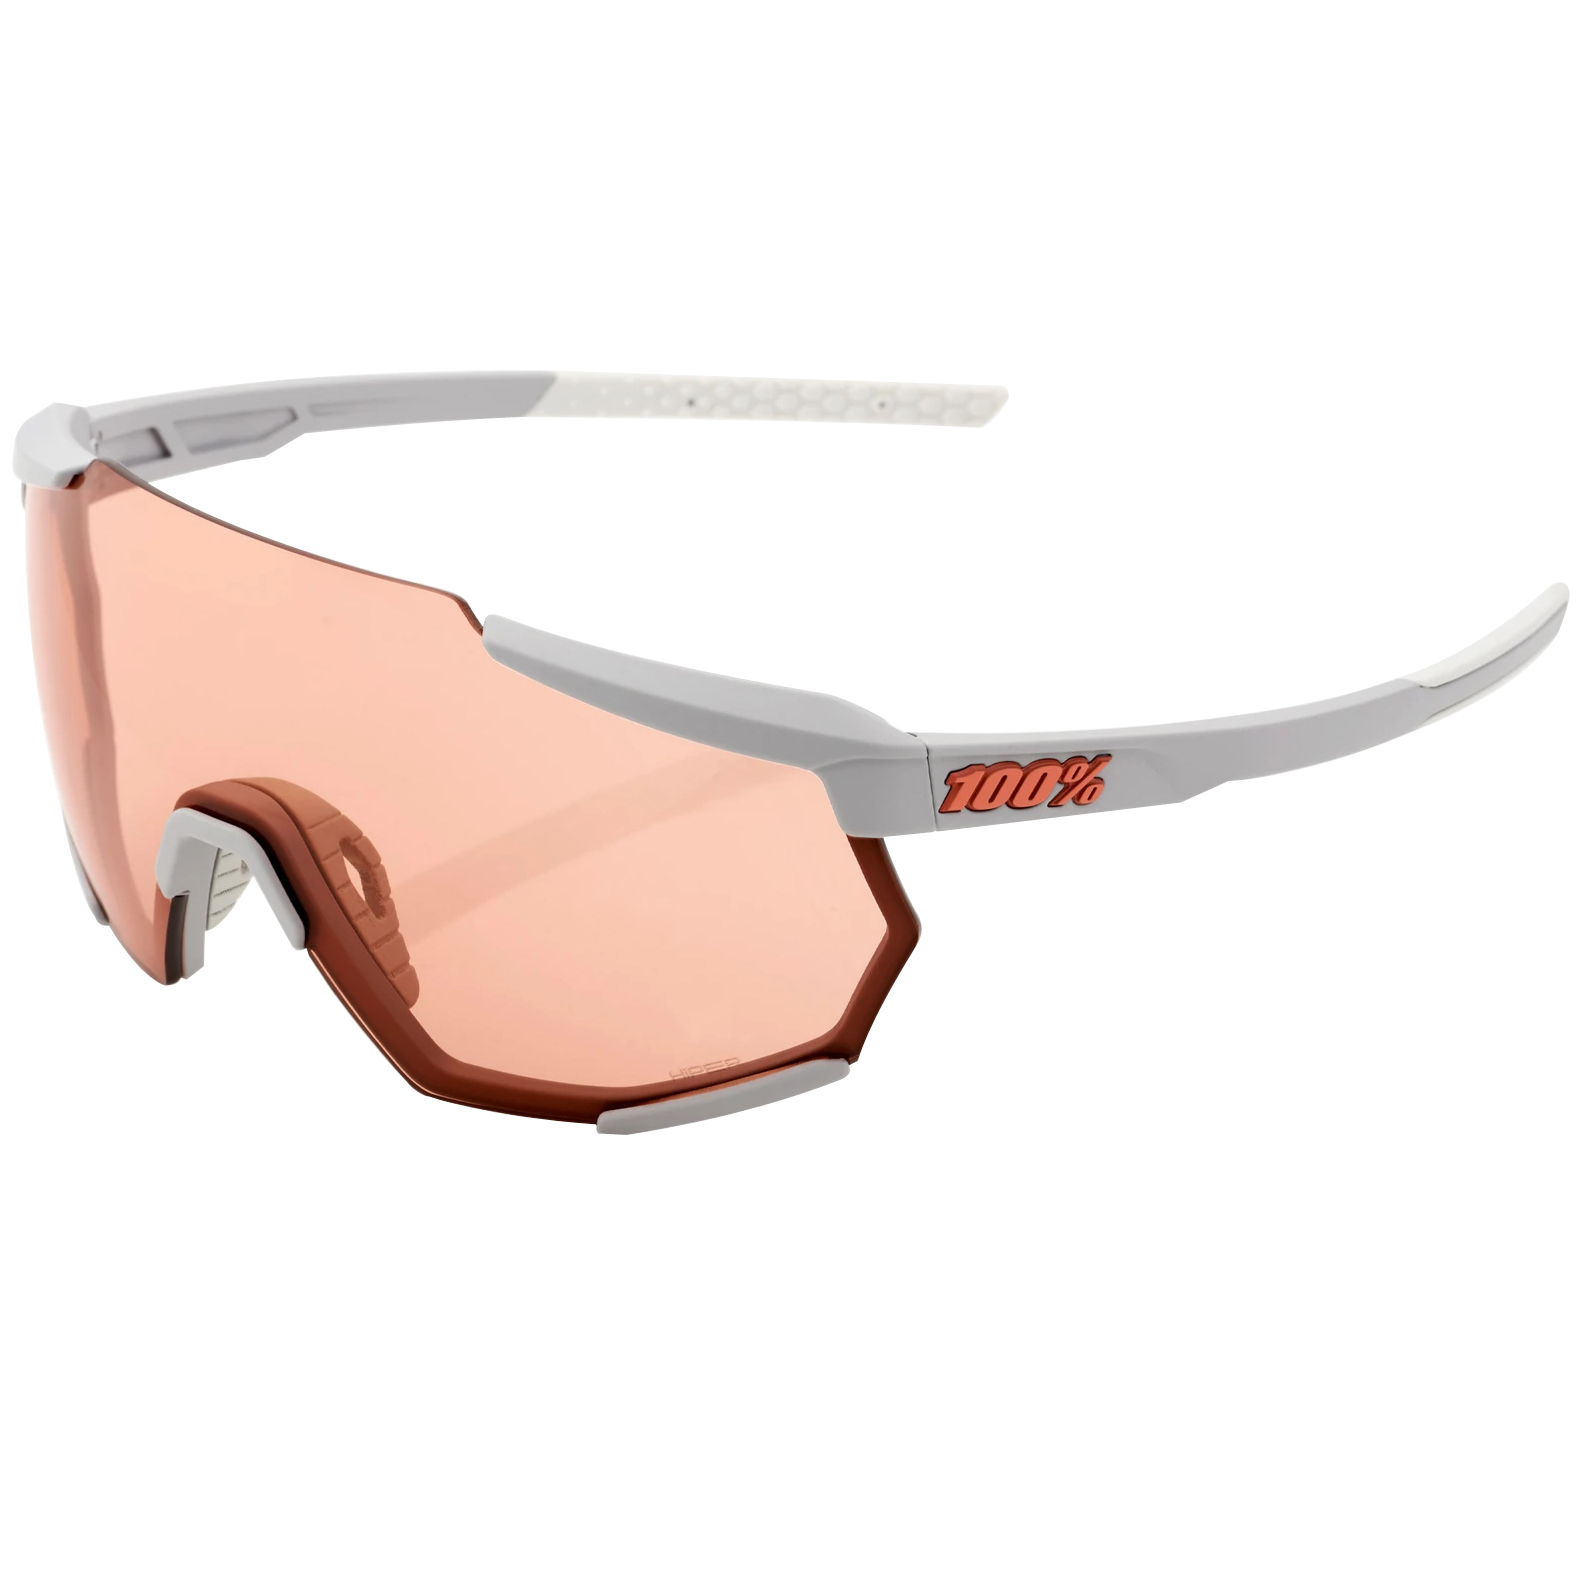 100% Racetrap HiPER Mirror Glasses - Soft Tact Stone Grey/Coral + Clear